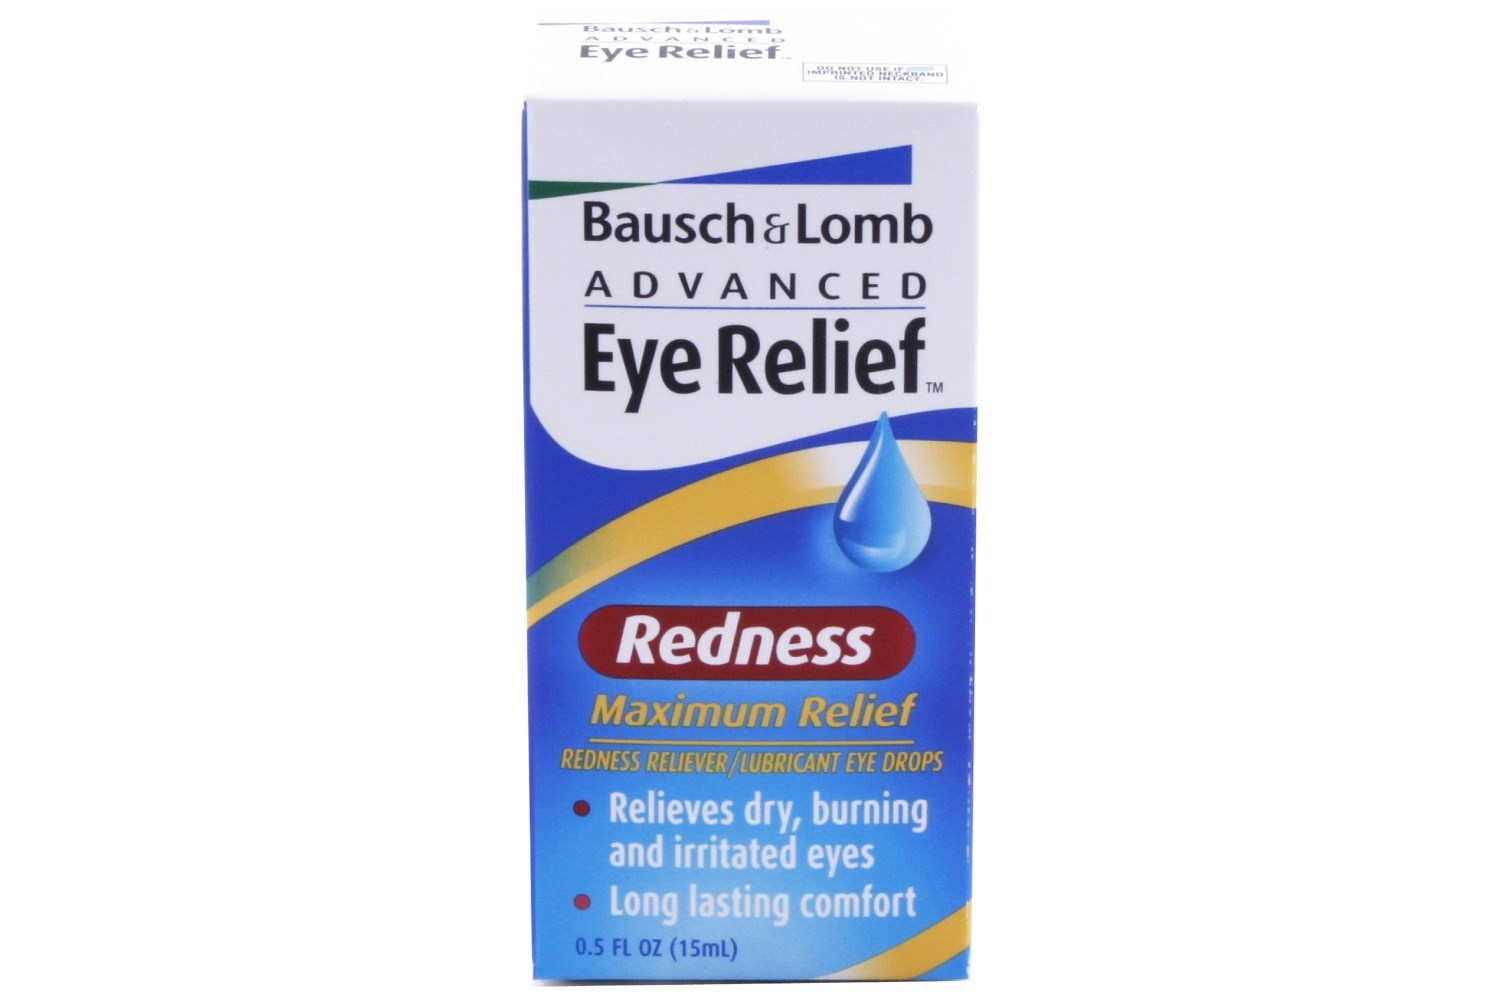 Advanced Eye Relief Redness Maximum Relief Eye Drops 5 fl oz